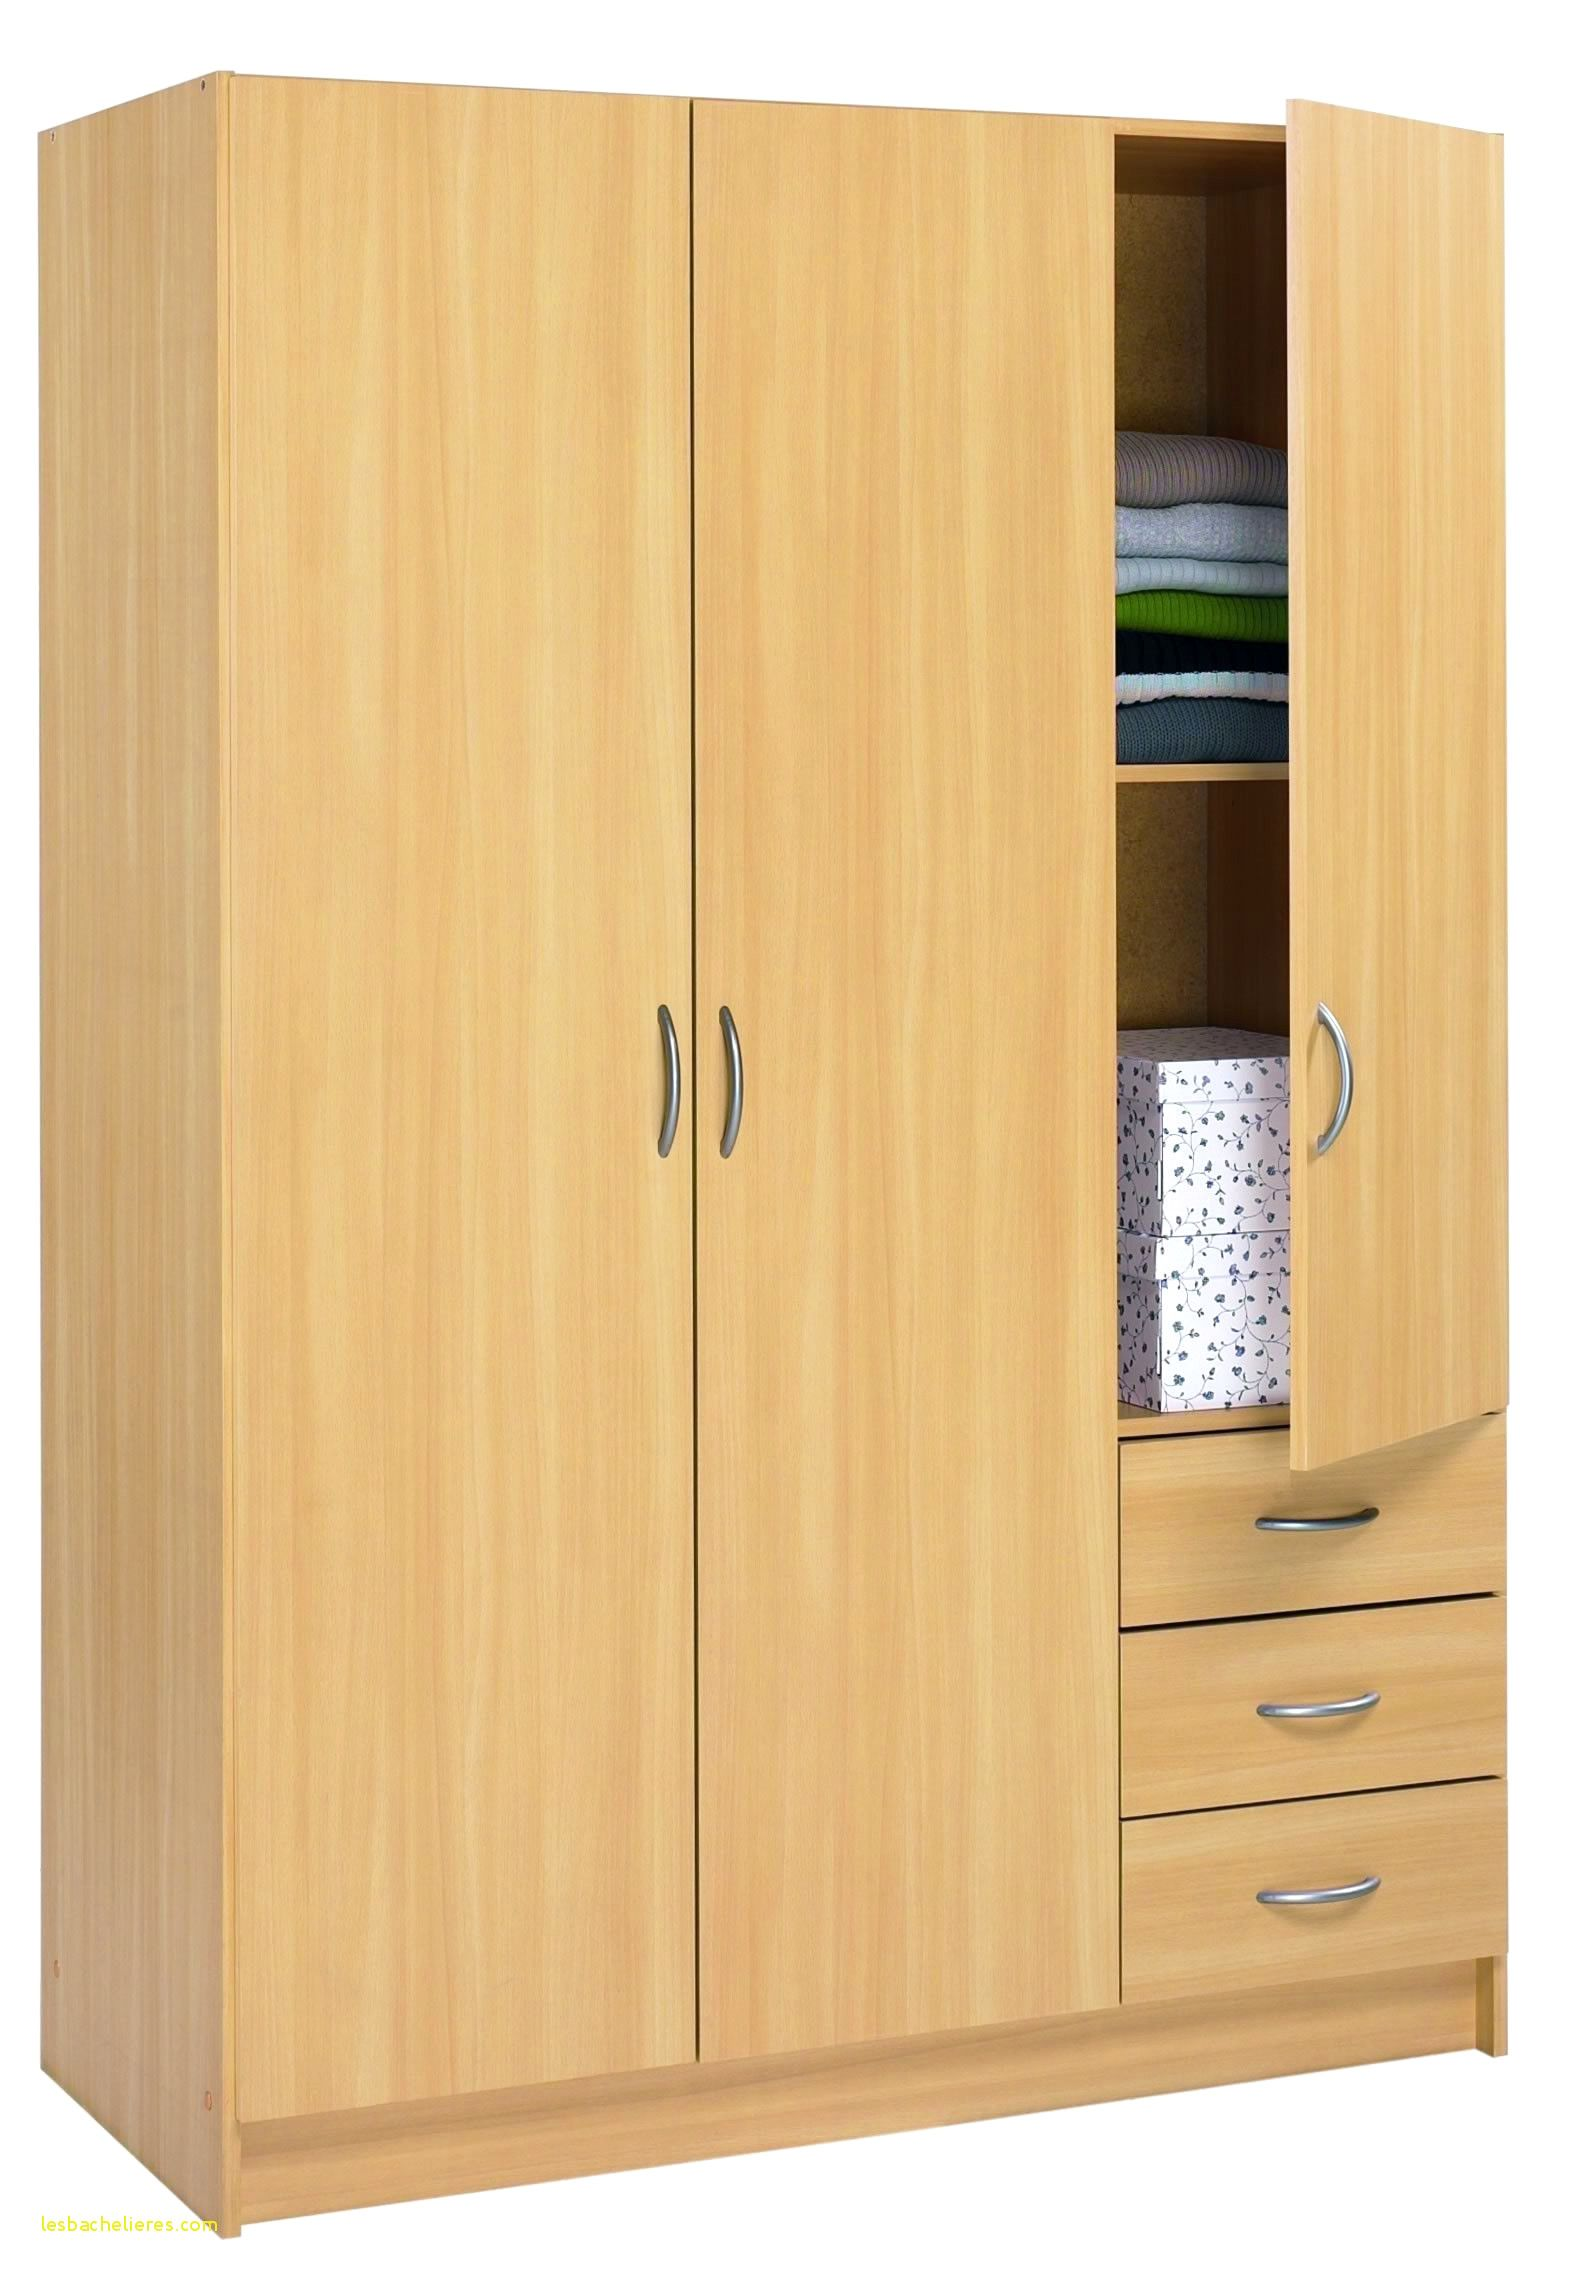 Armoire A Pharmacie Murale Armoire A Pharmacie Murale Amazon Armoires A Pharmacie Cuisine Maison Cost Tall Cabinet Storage Home Etc 3 Door Sliding Wardrobe